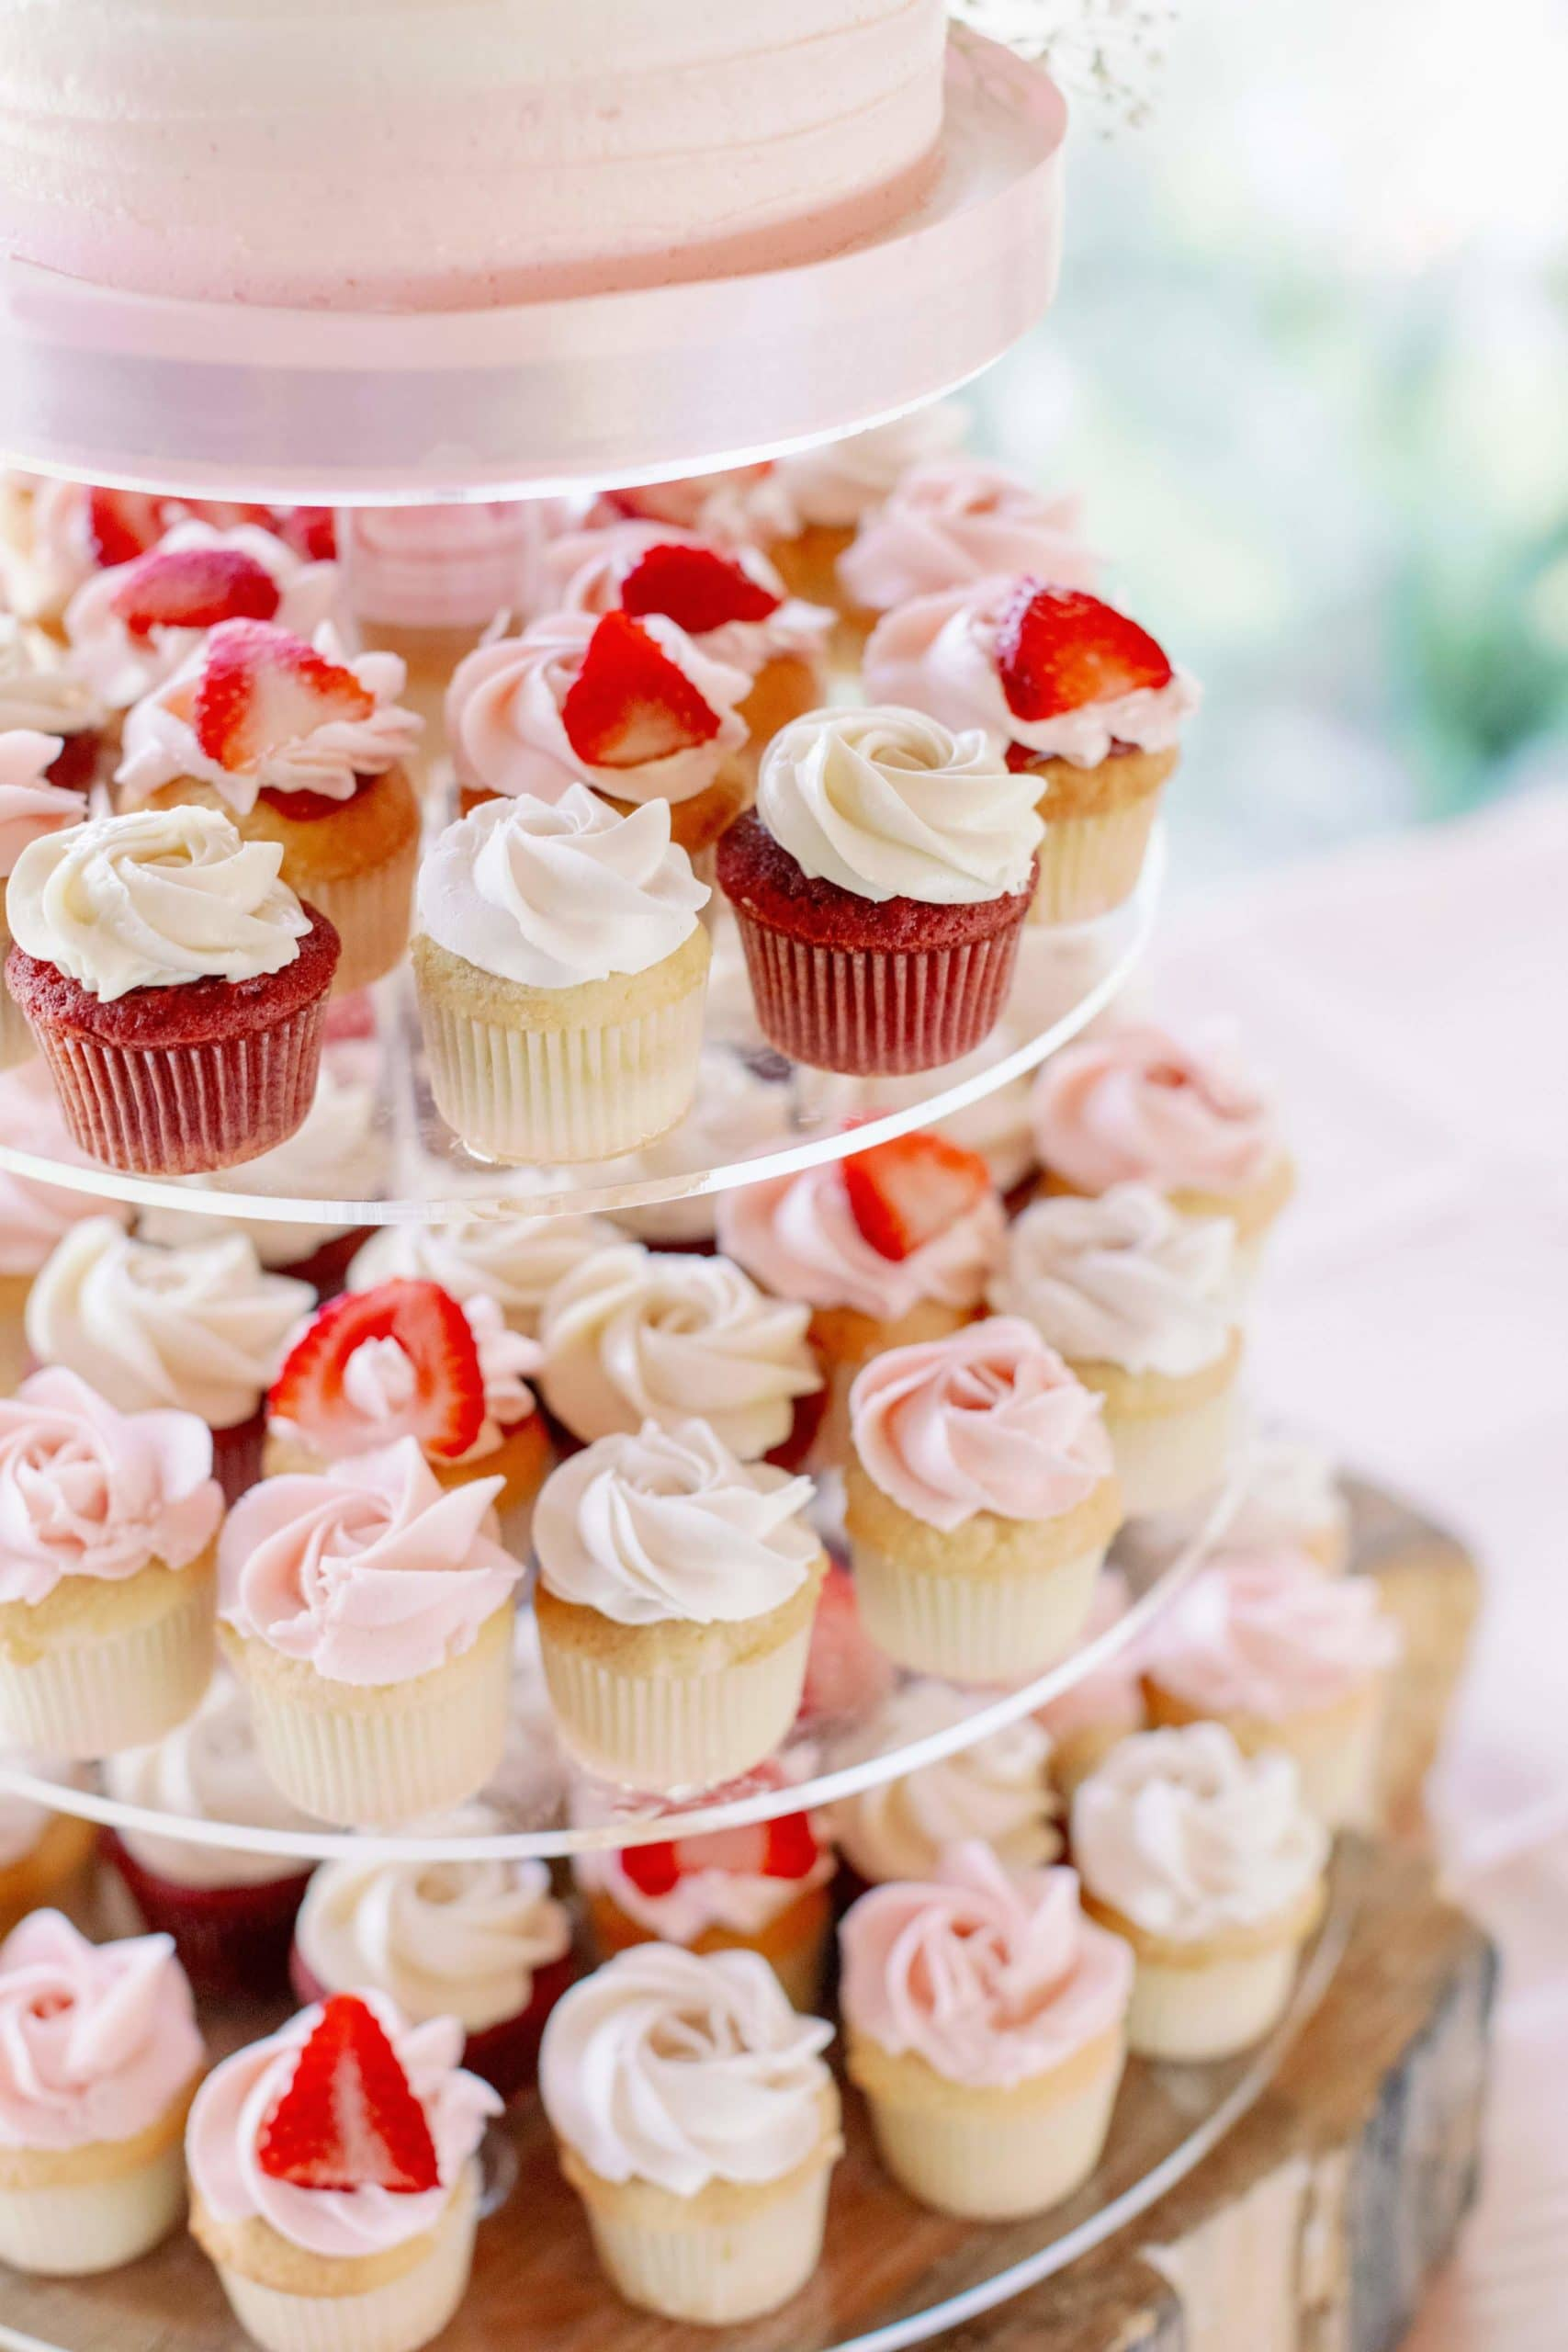 assorted pink and white wedding cupcakes